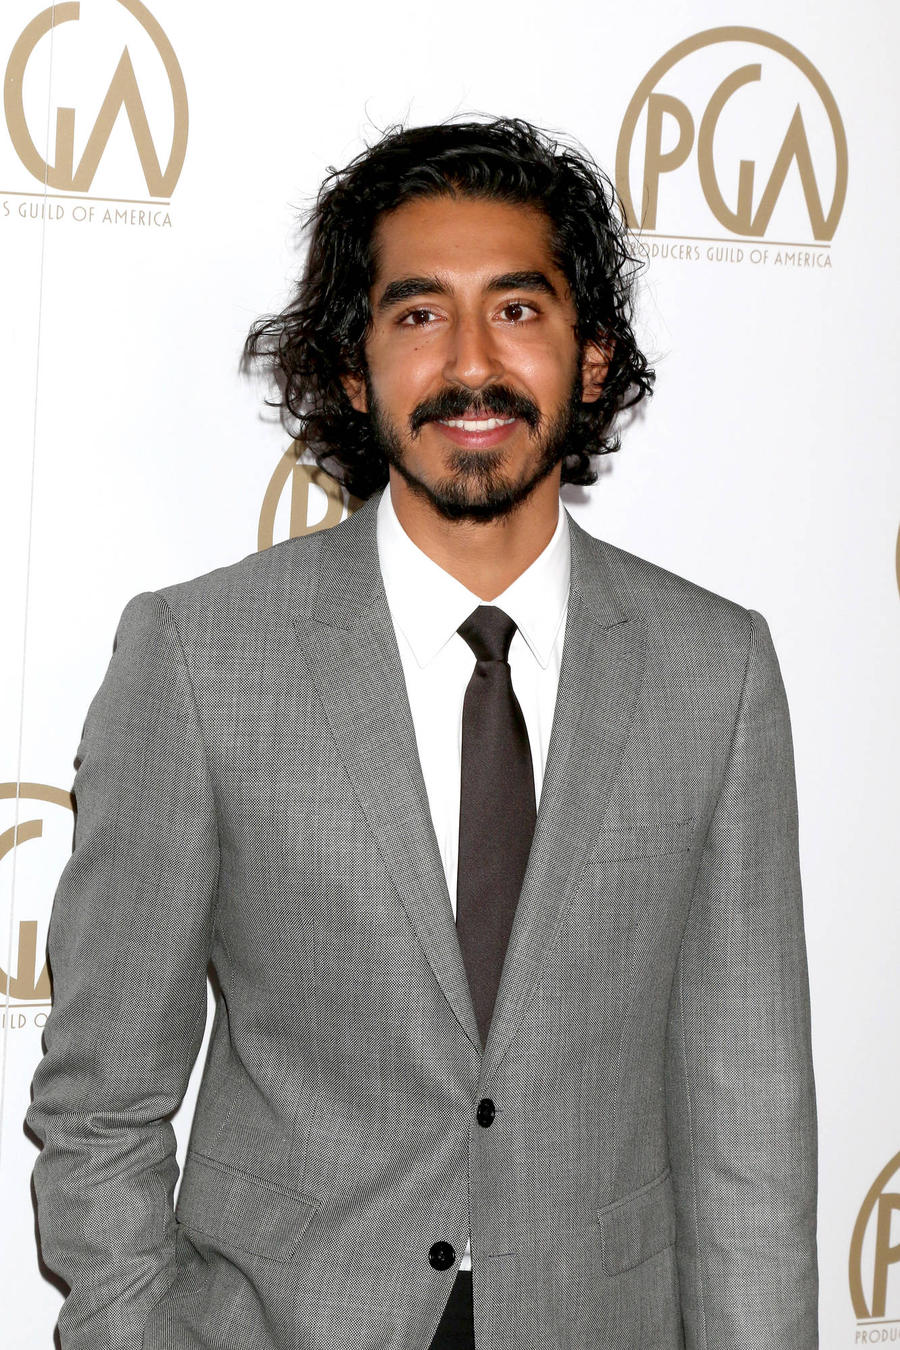 Dev Patel Slams Awards Ceremonies Amid U.s. Immigrant Ban